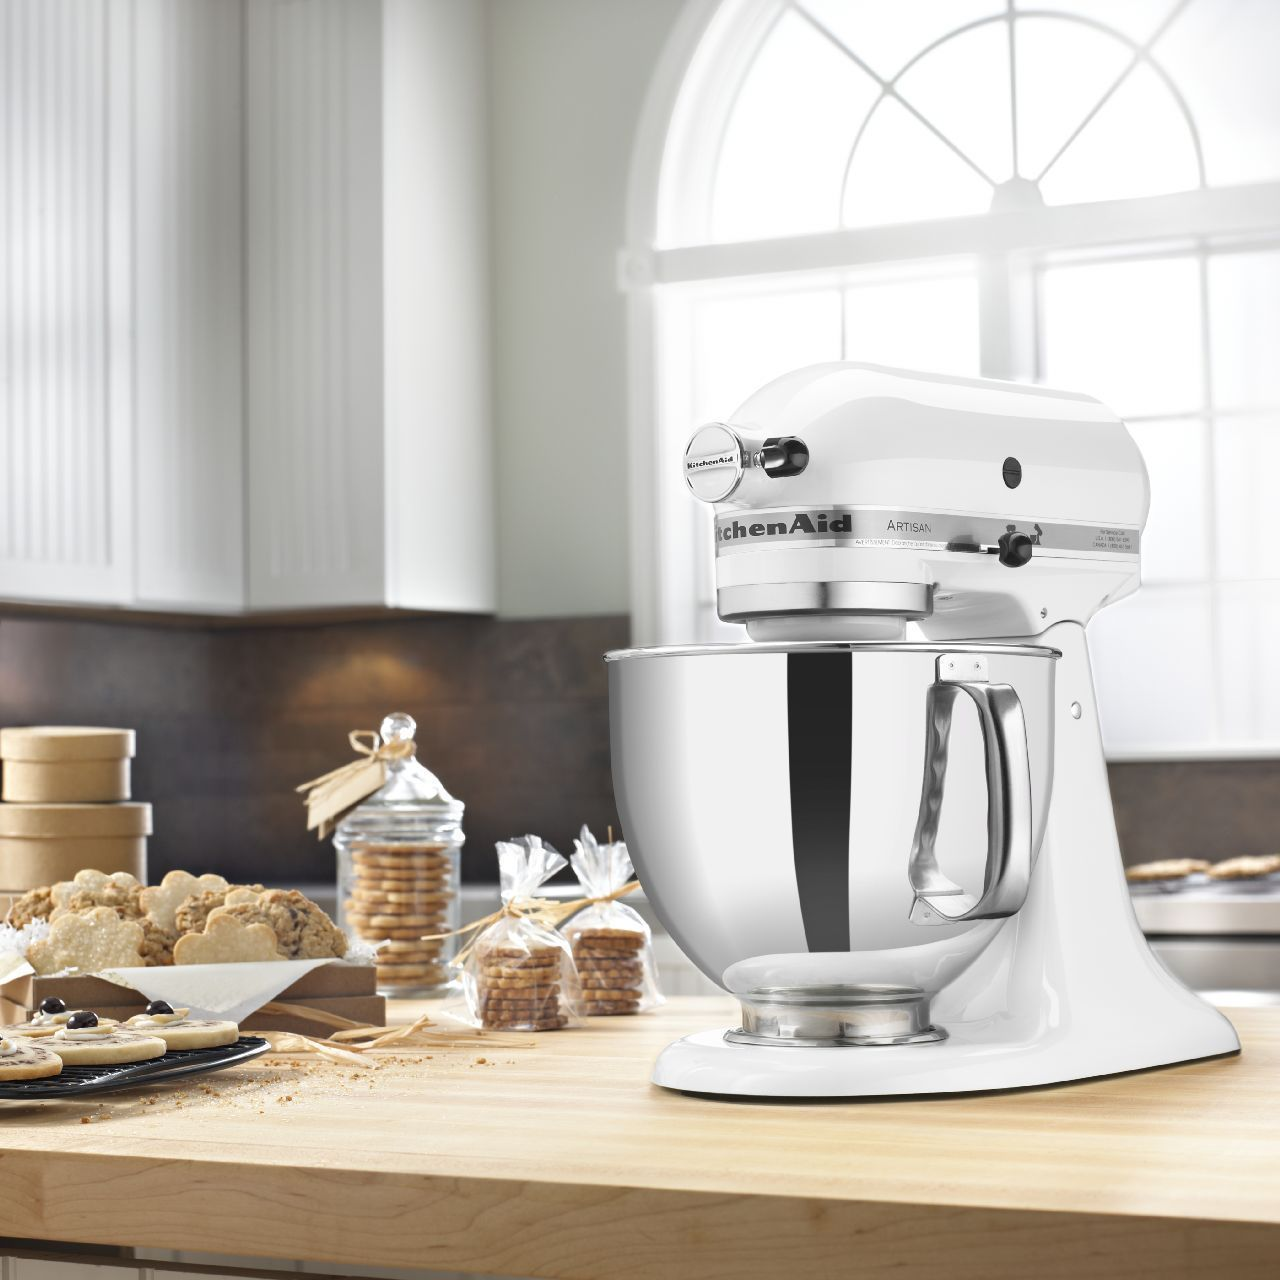 Find a KitchenAid Mixer on eBay